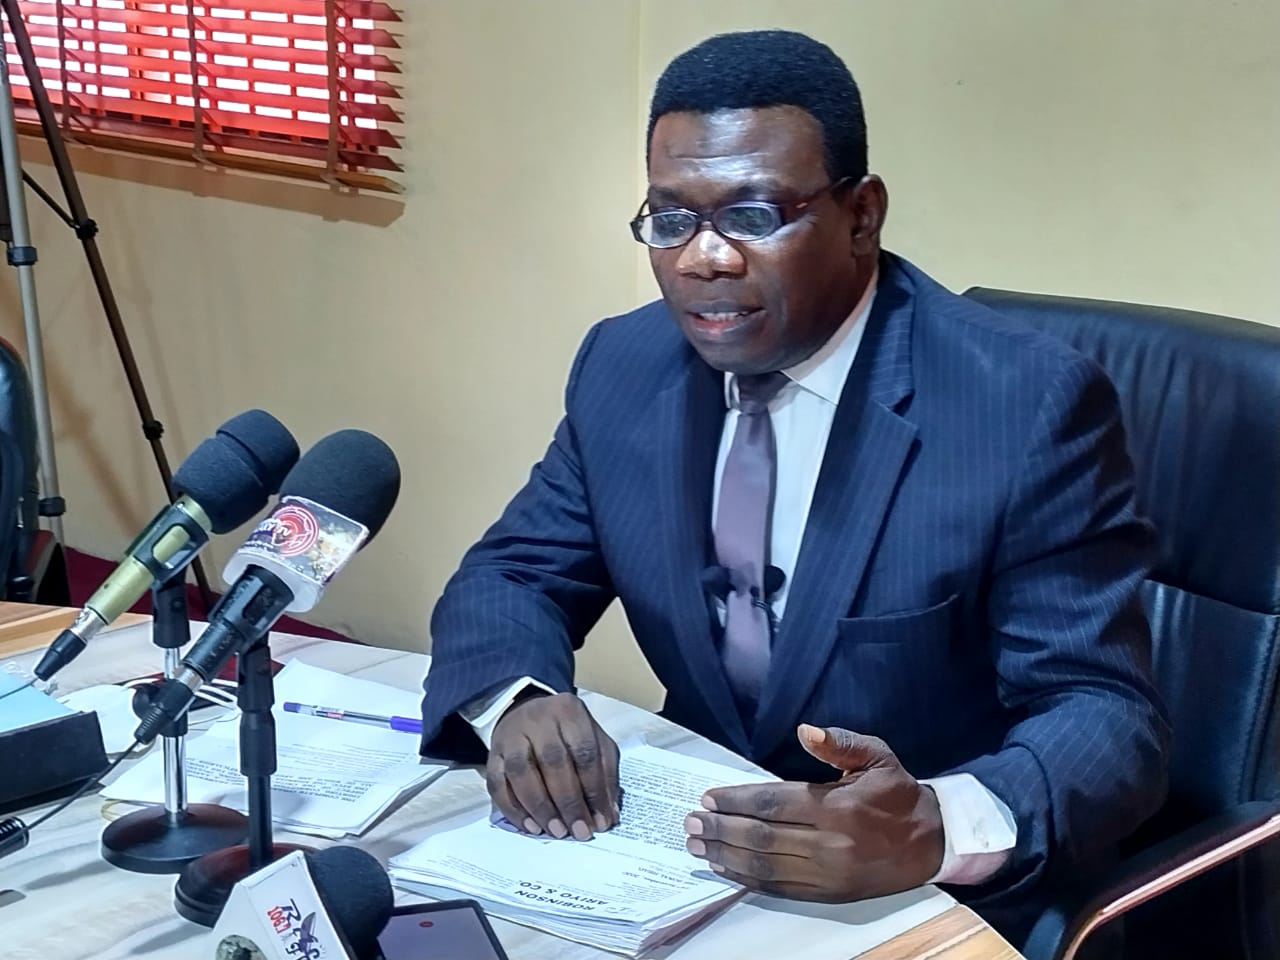 Legal Practitioner Appeals To Buhari, Okowa, Malami To Help Recover Missing N300M Meant For Itsekiri Development